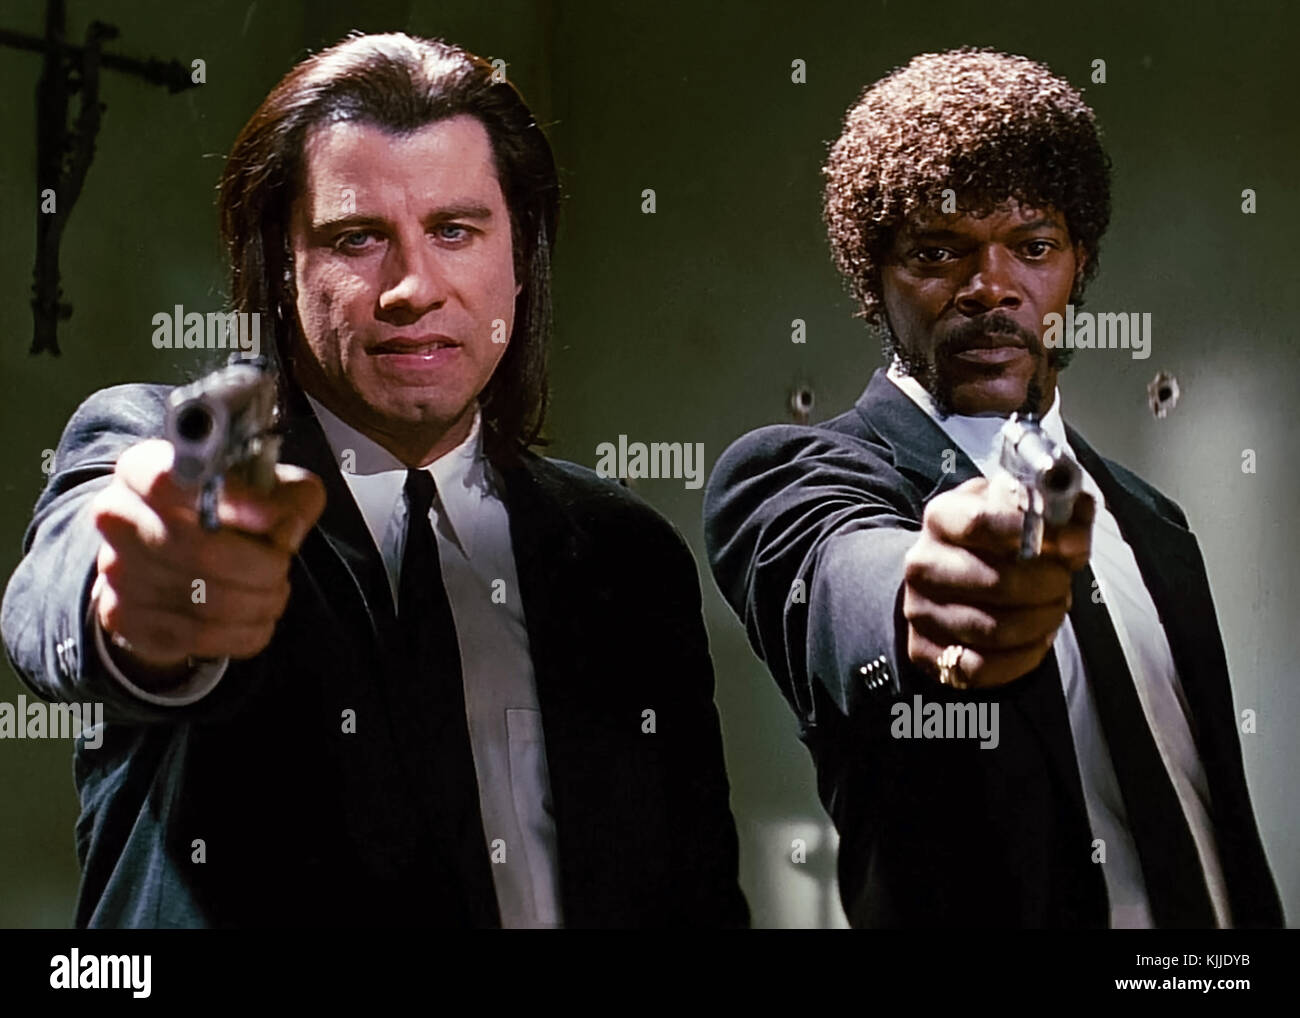 Samuel L. Jackson and John Travolta as mob hit men Jules Winnfield and Vincent Vega in Pulp Fiction (1994) directed by Quentin Tarantino. Stock Photo